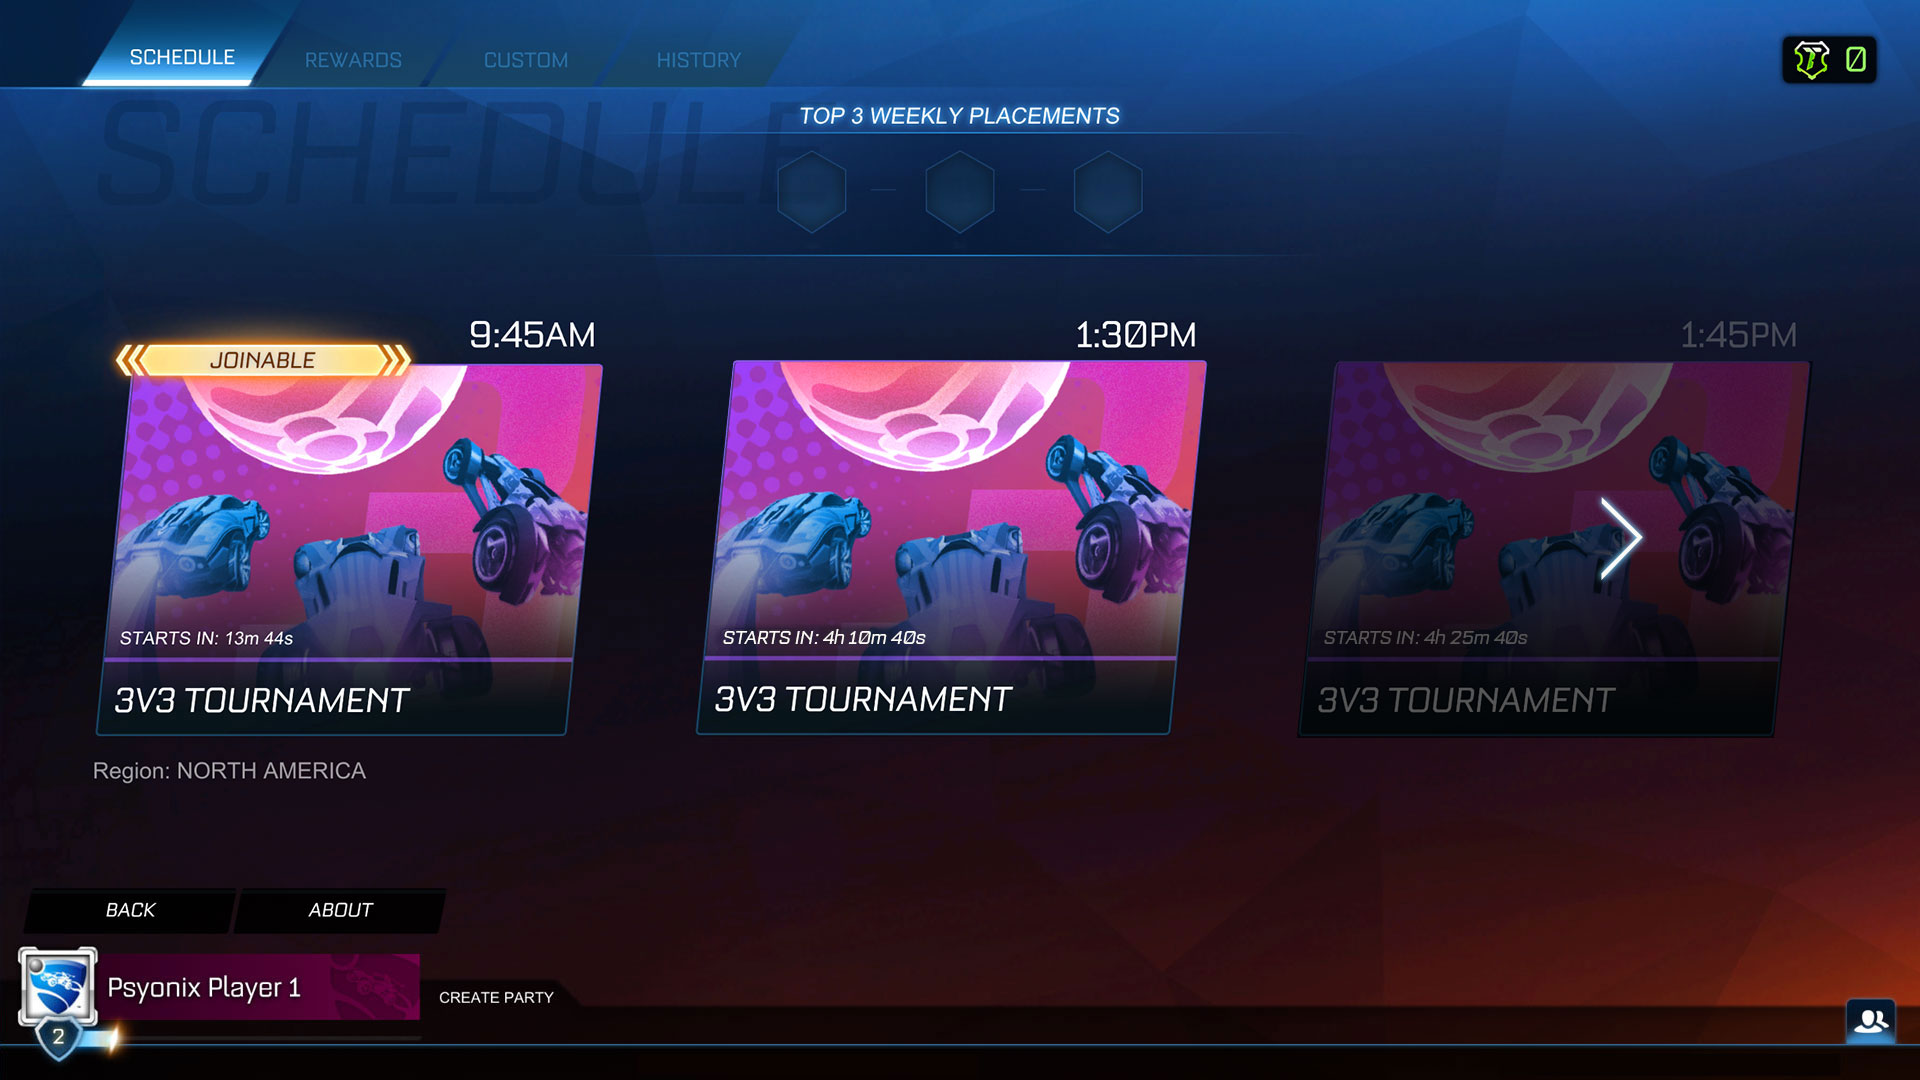 Rocket League Weekly Placements